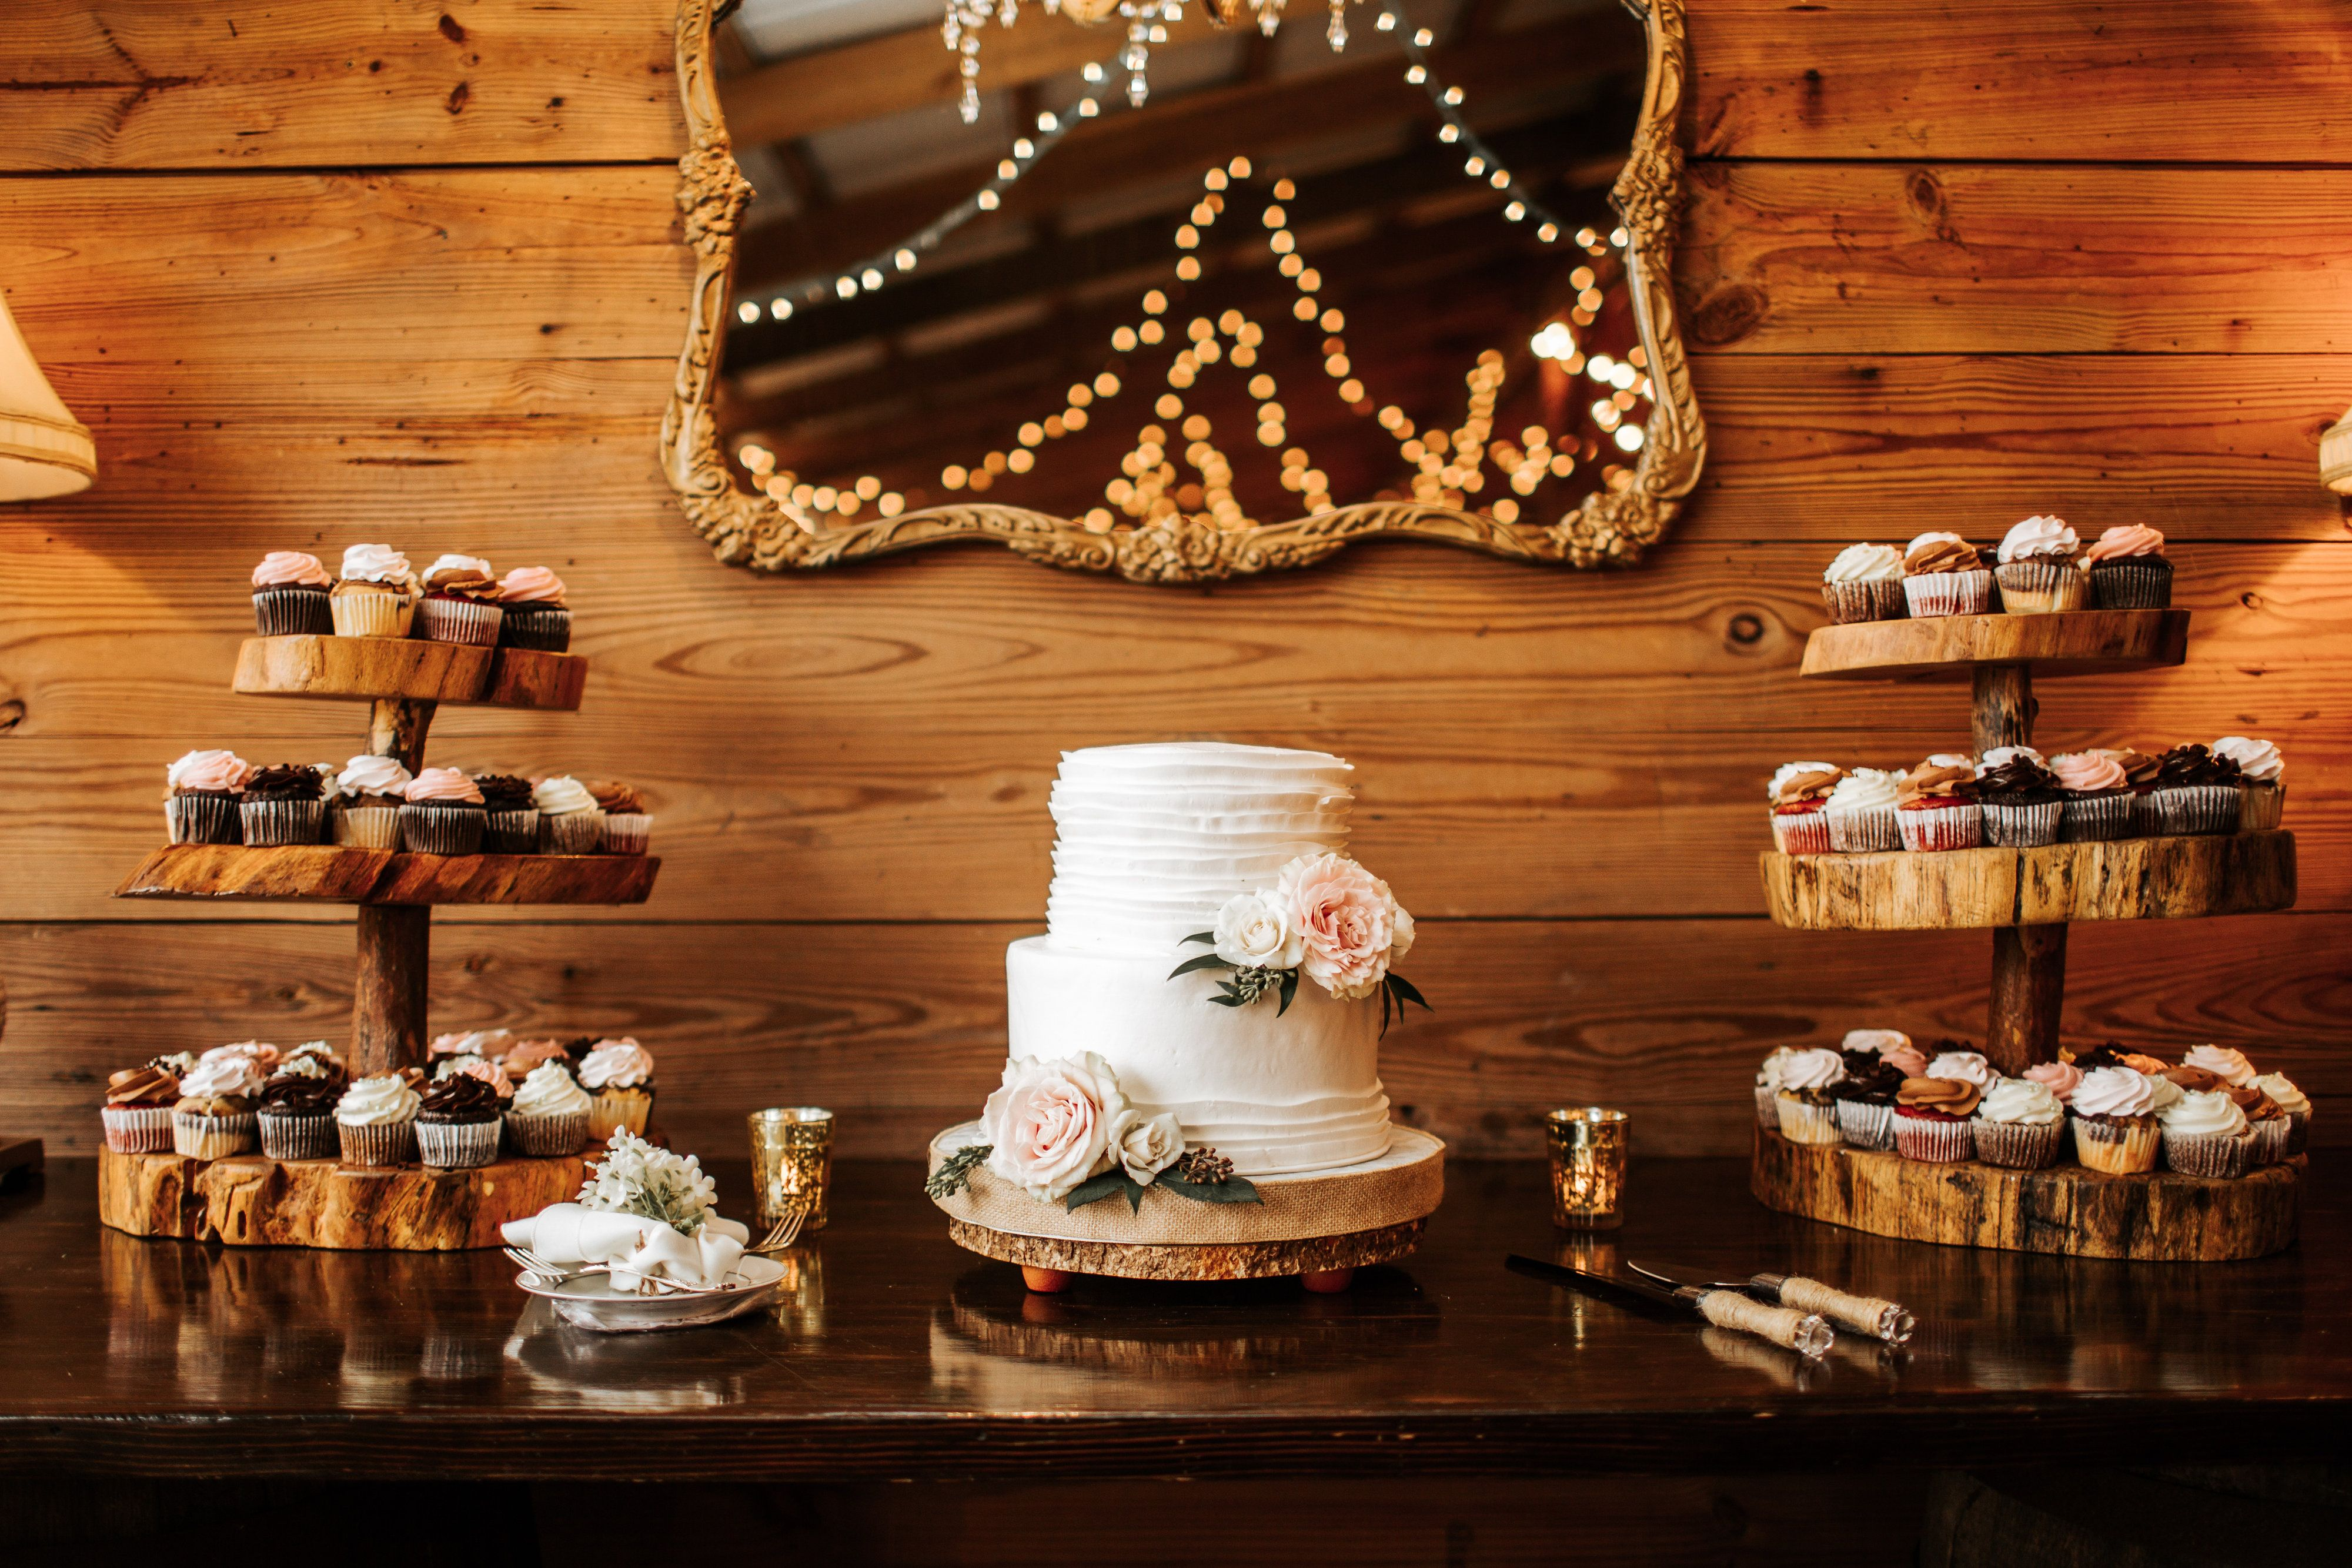 Wedding cake table decor ideas  A Relaxed Rustic Inspired Wedding at Cross Creek Ranch in Dover FL